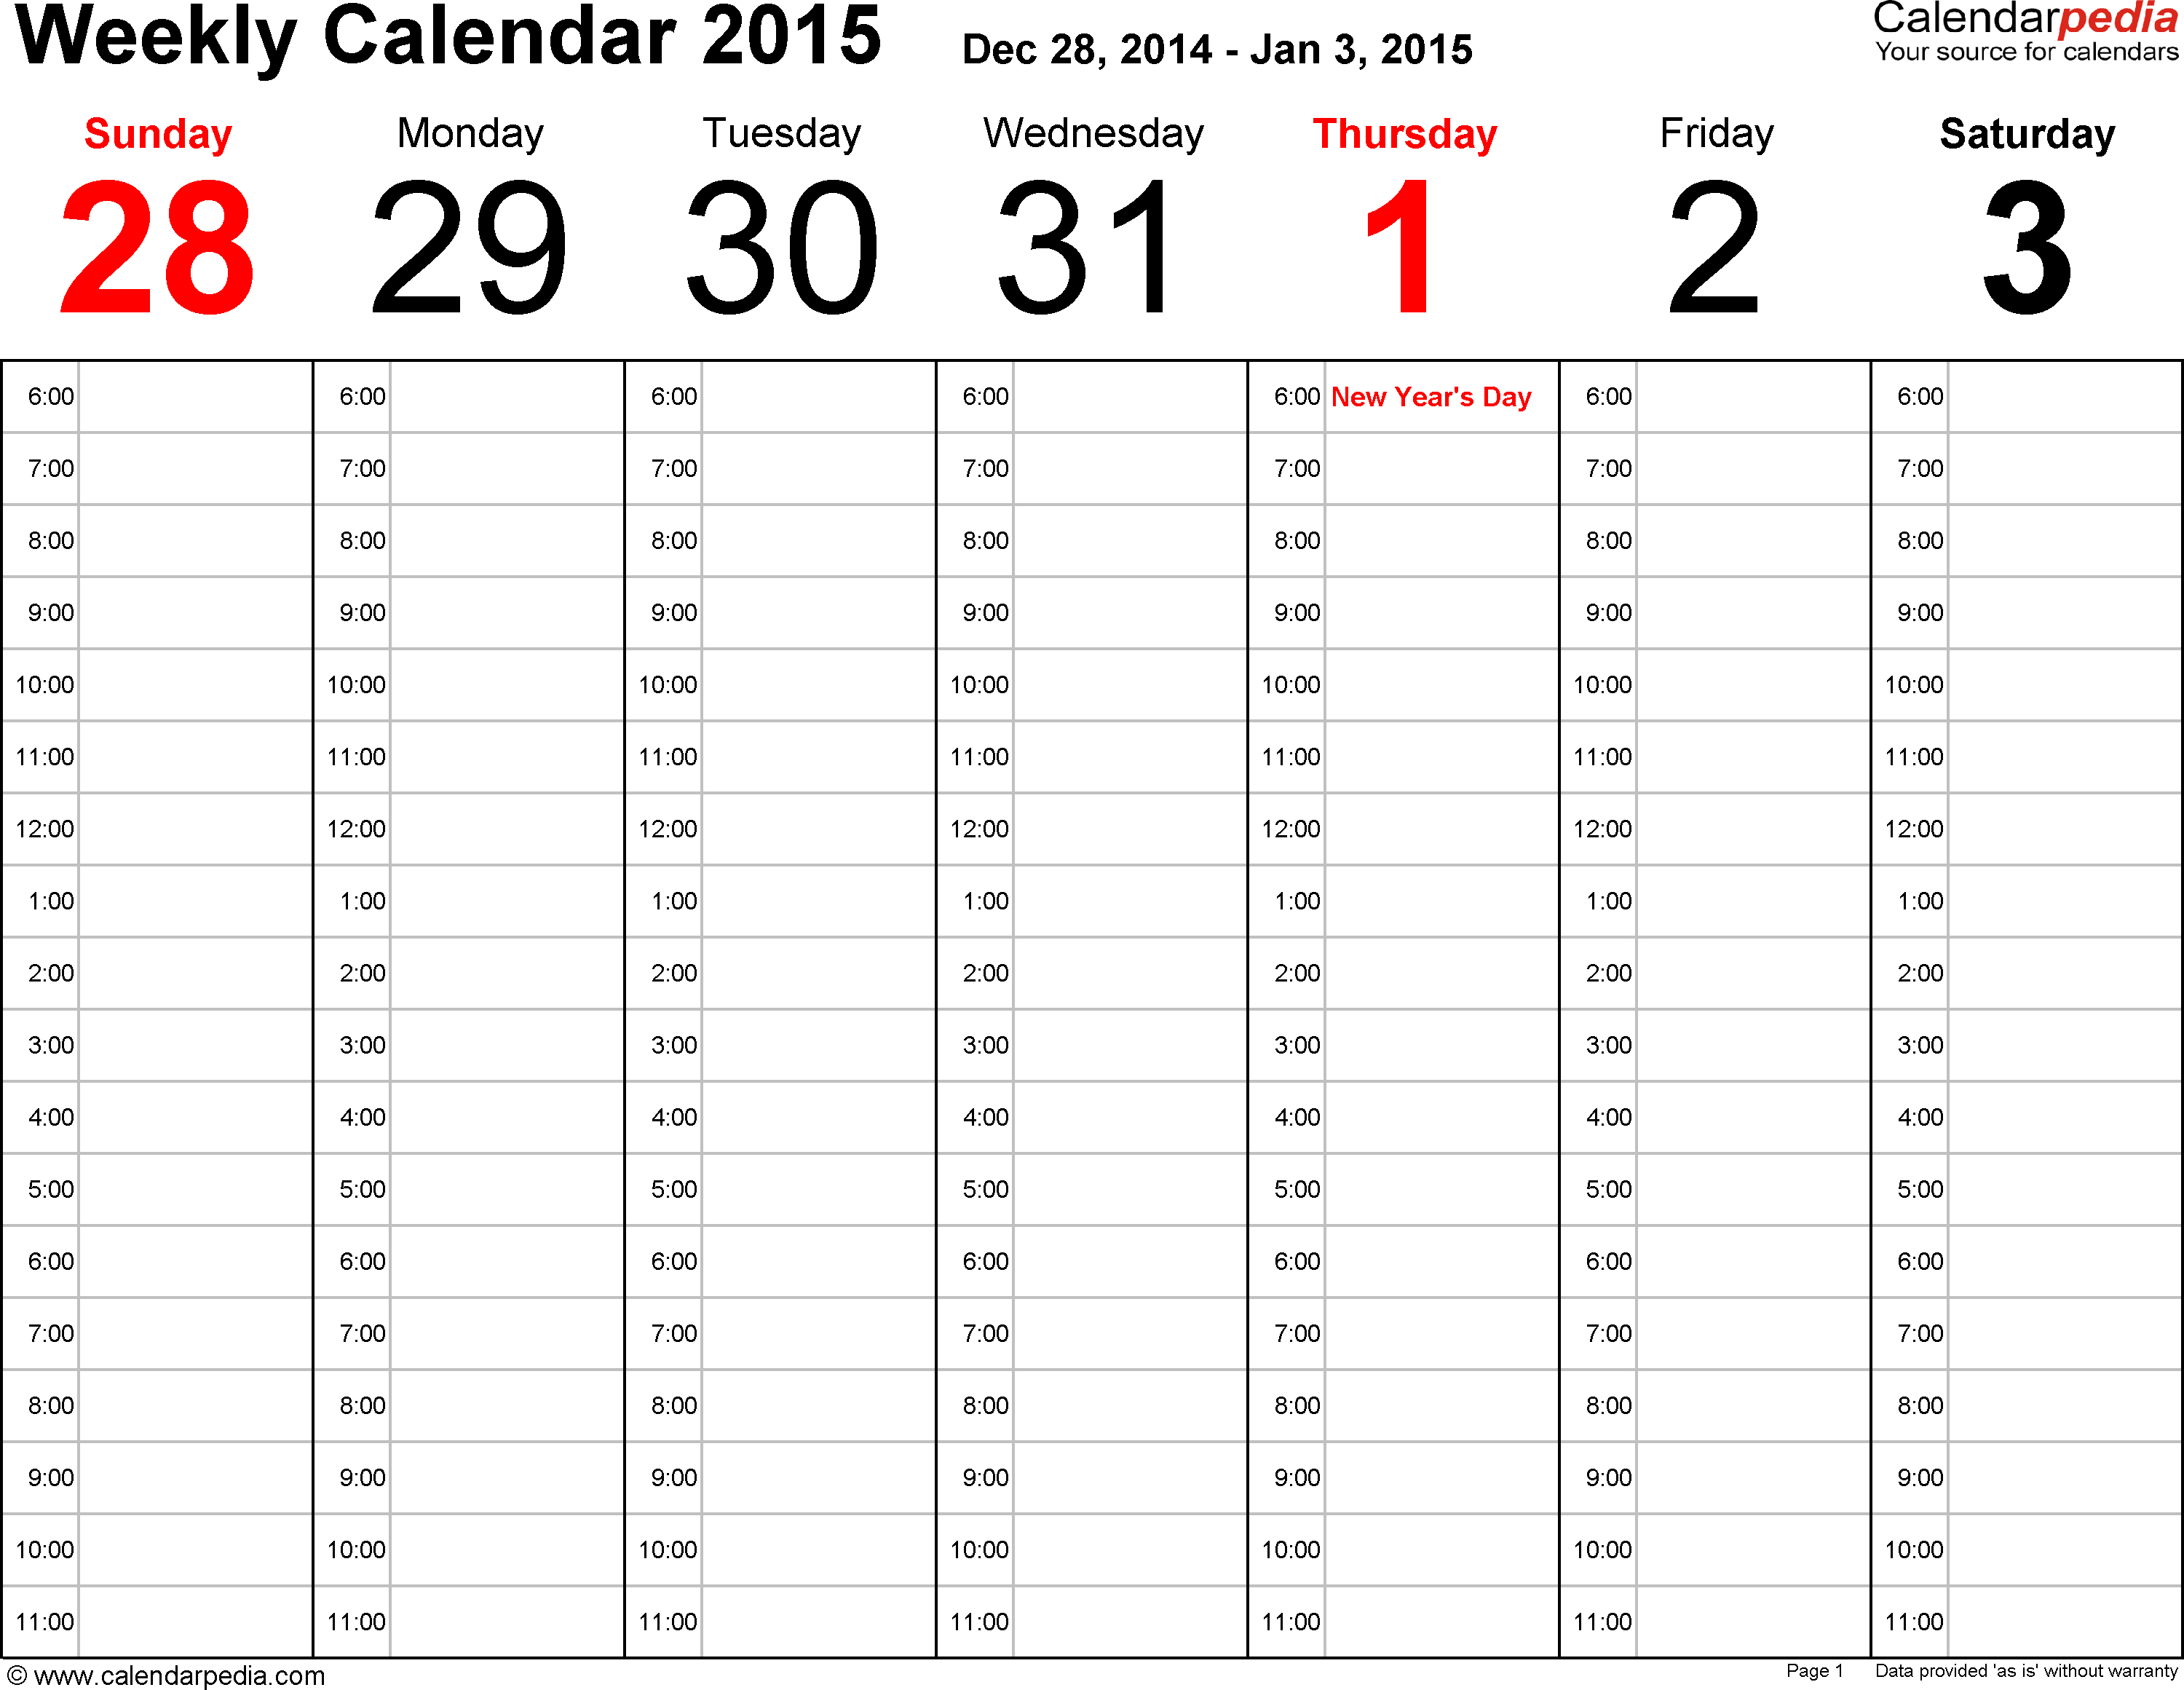 Weekly Calendar 2015 For Pdf - 12 Free Printable Templates pertaining to Free 7 Day Work Schedule Template Pdf